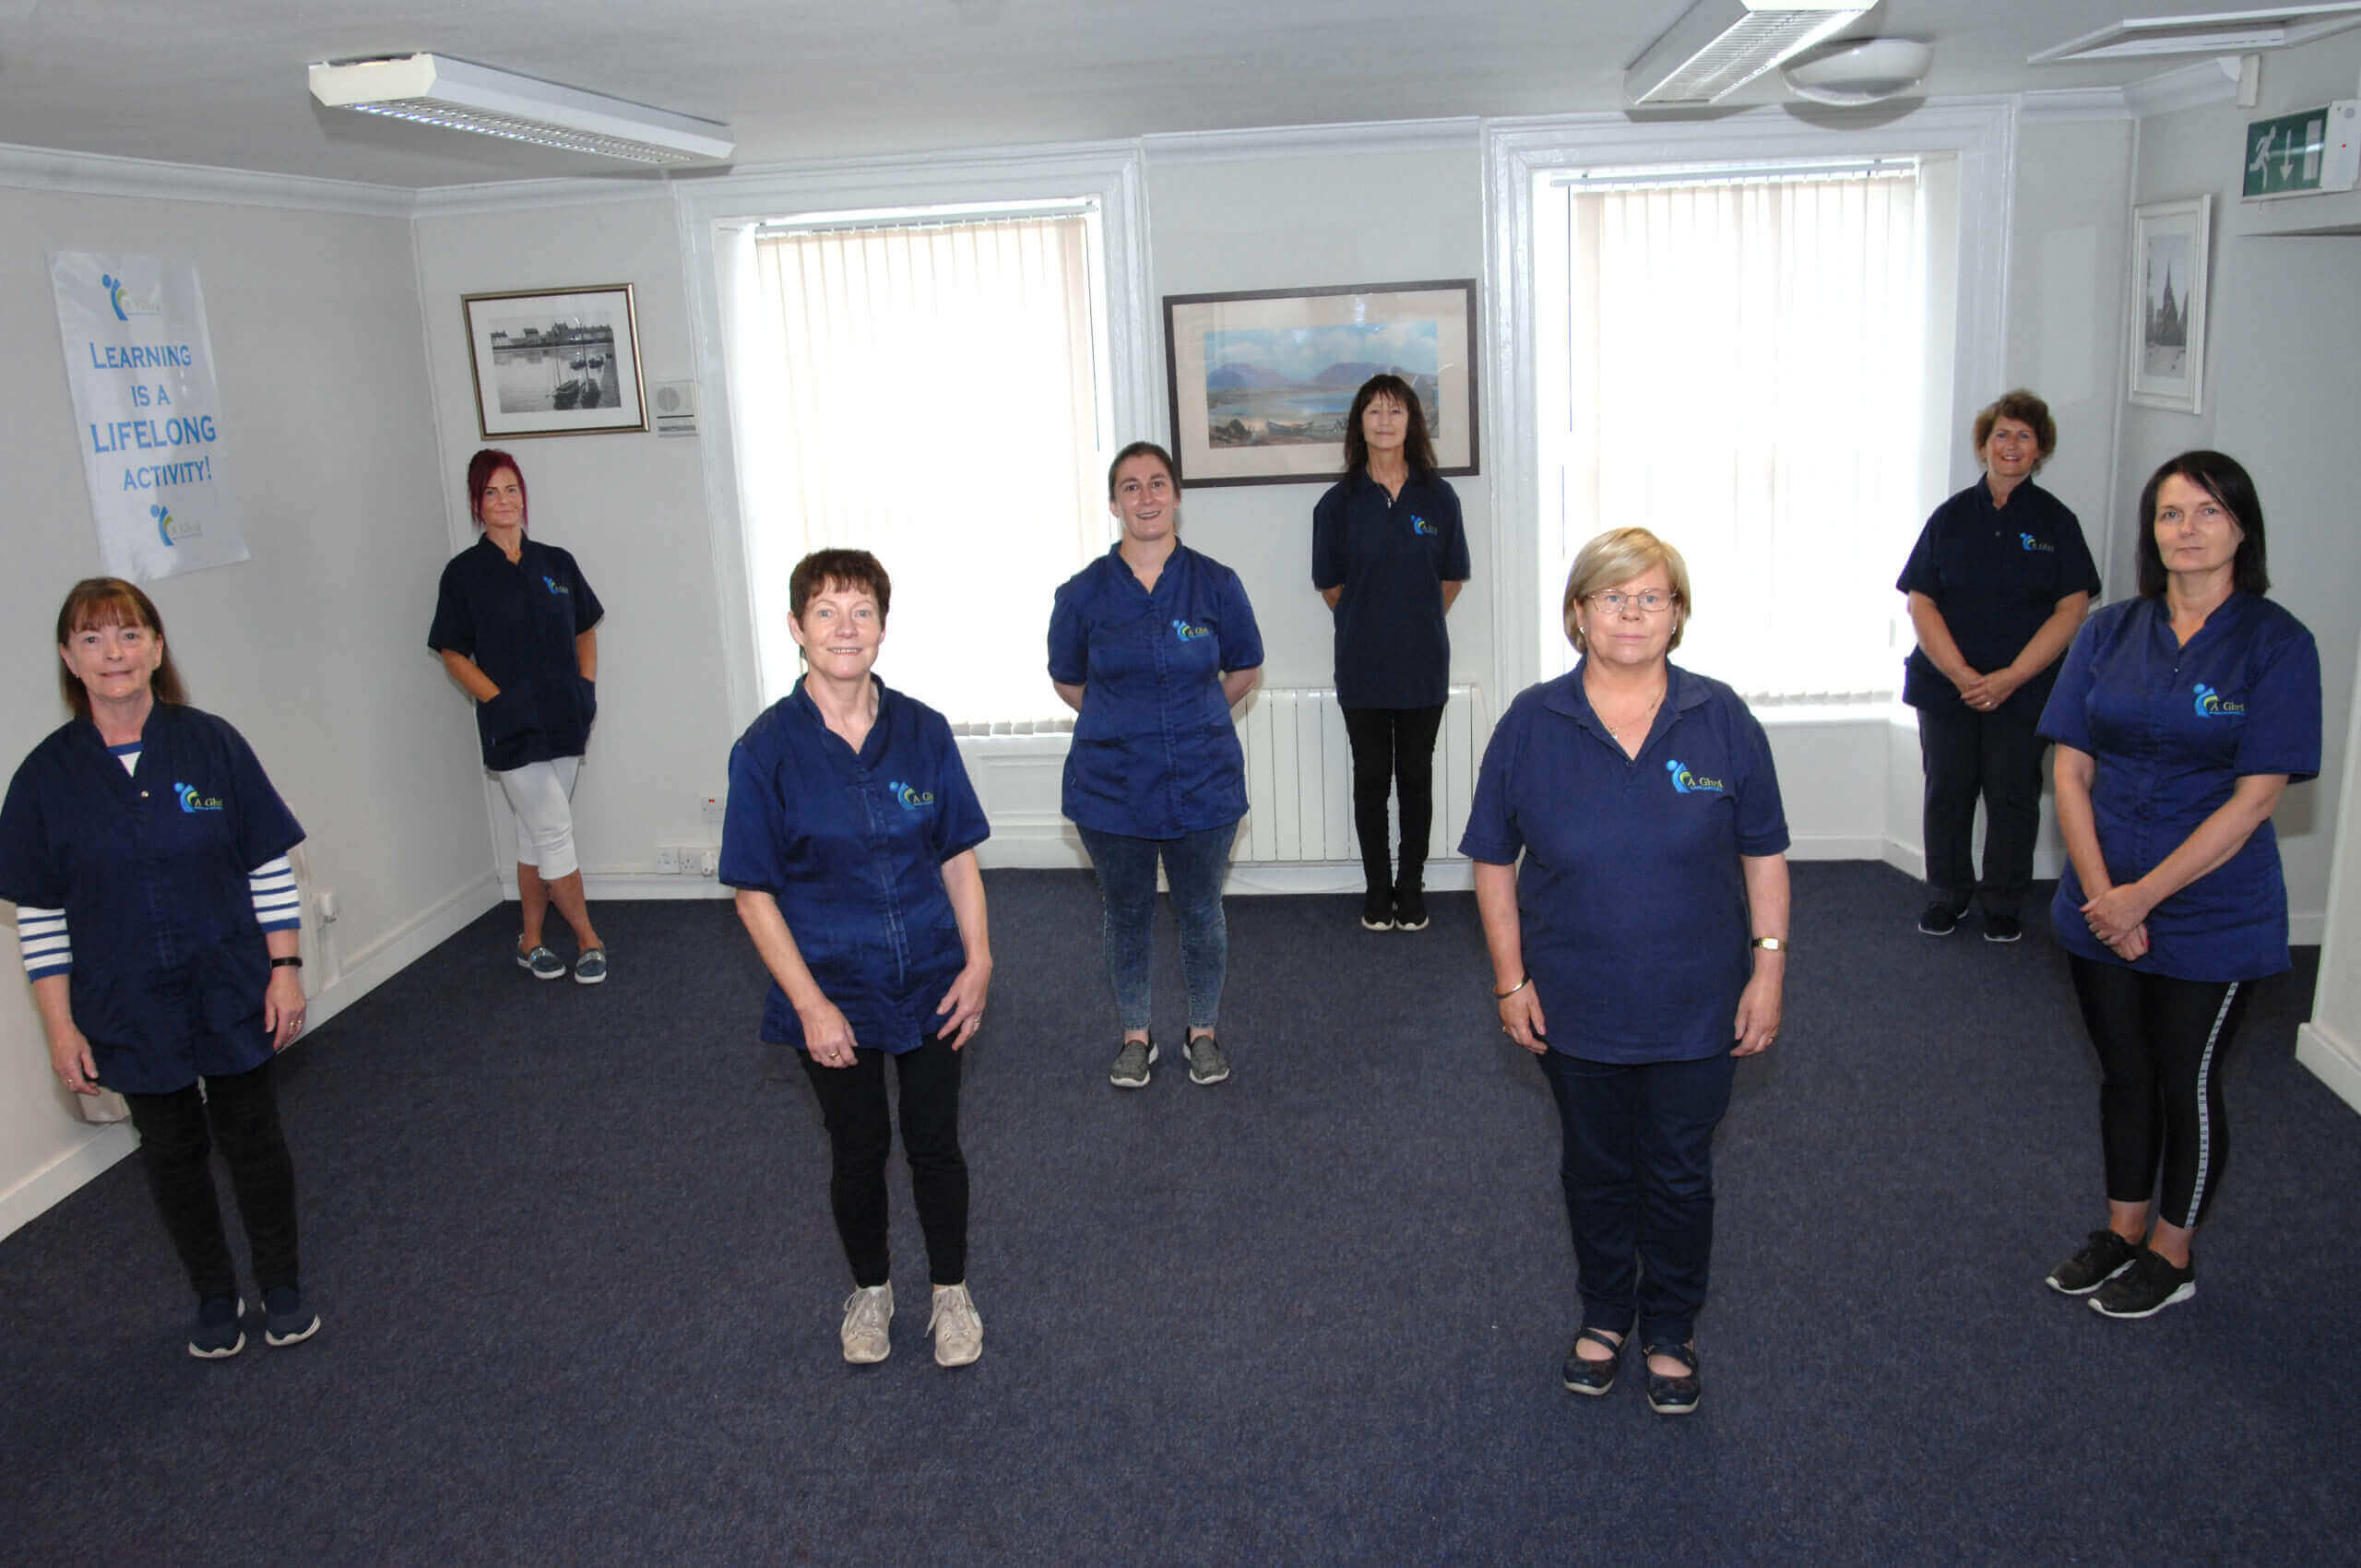 Manual Handling and People Moving Course